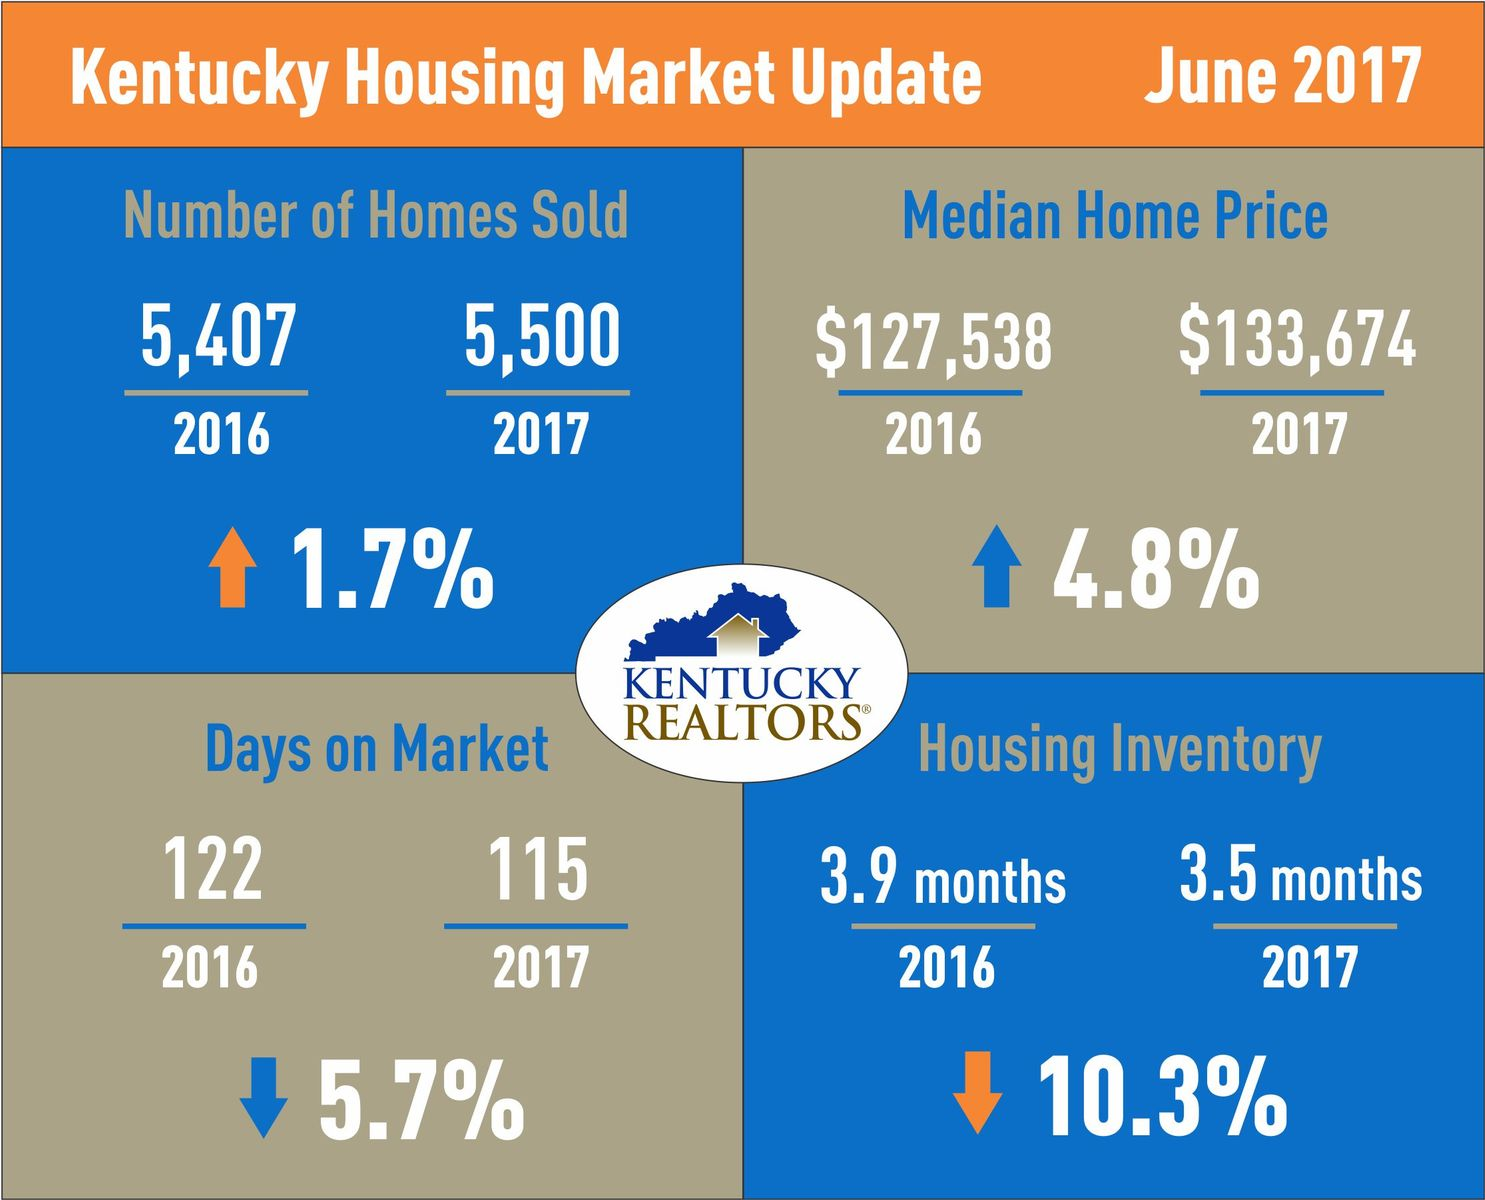 Kentucky Housing Market Update June 2017